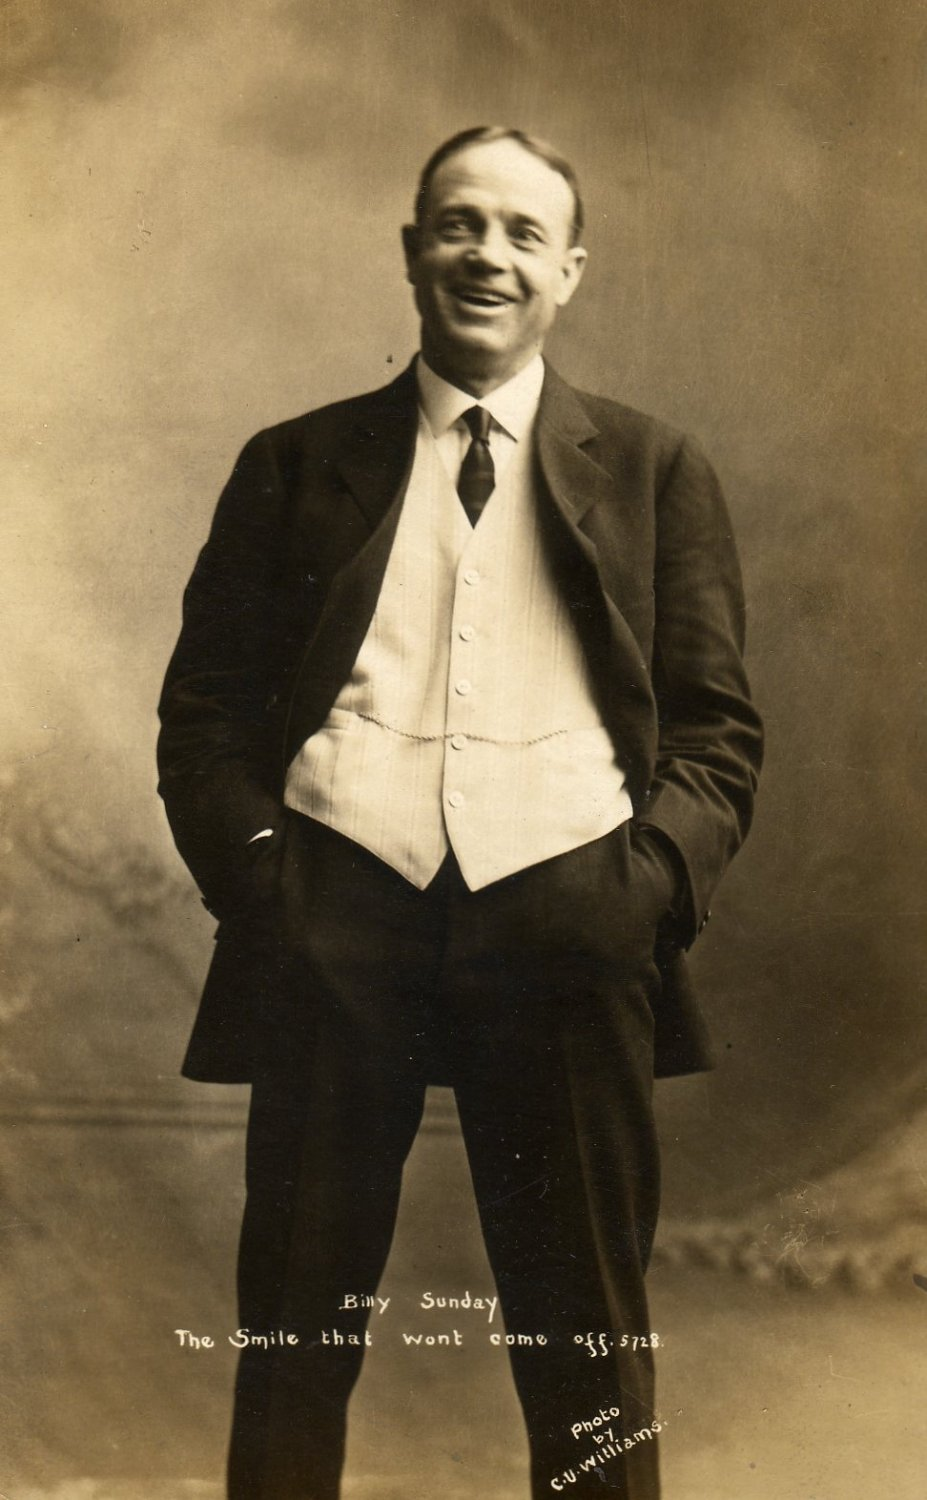 Portrait Postcard of Billy Sunday, Smiling & Well Dressed c.1907